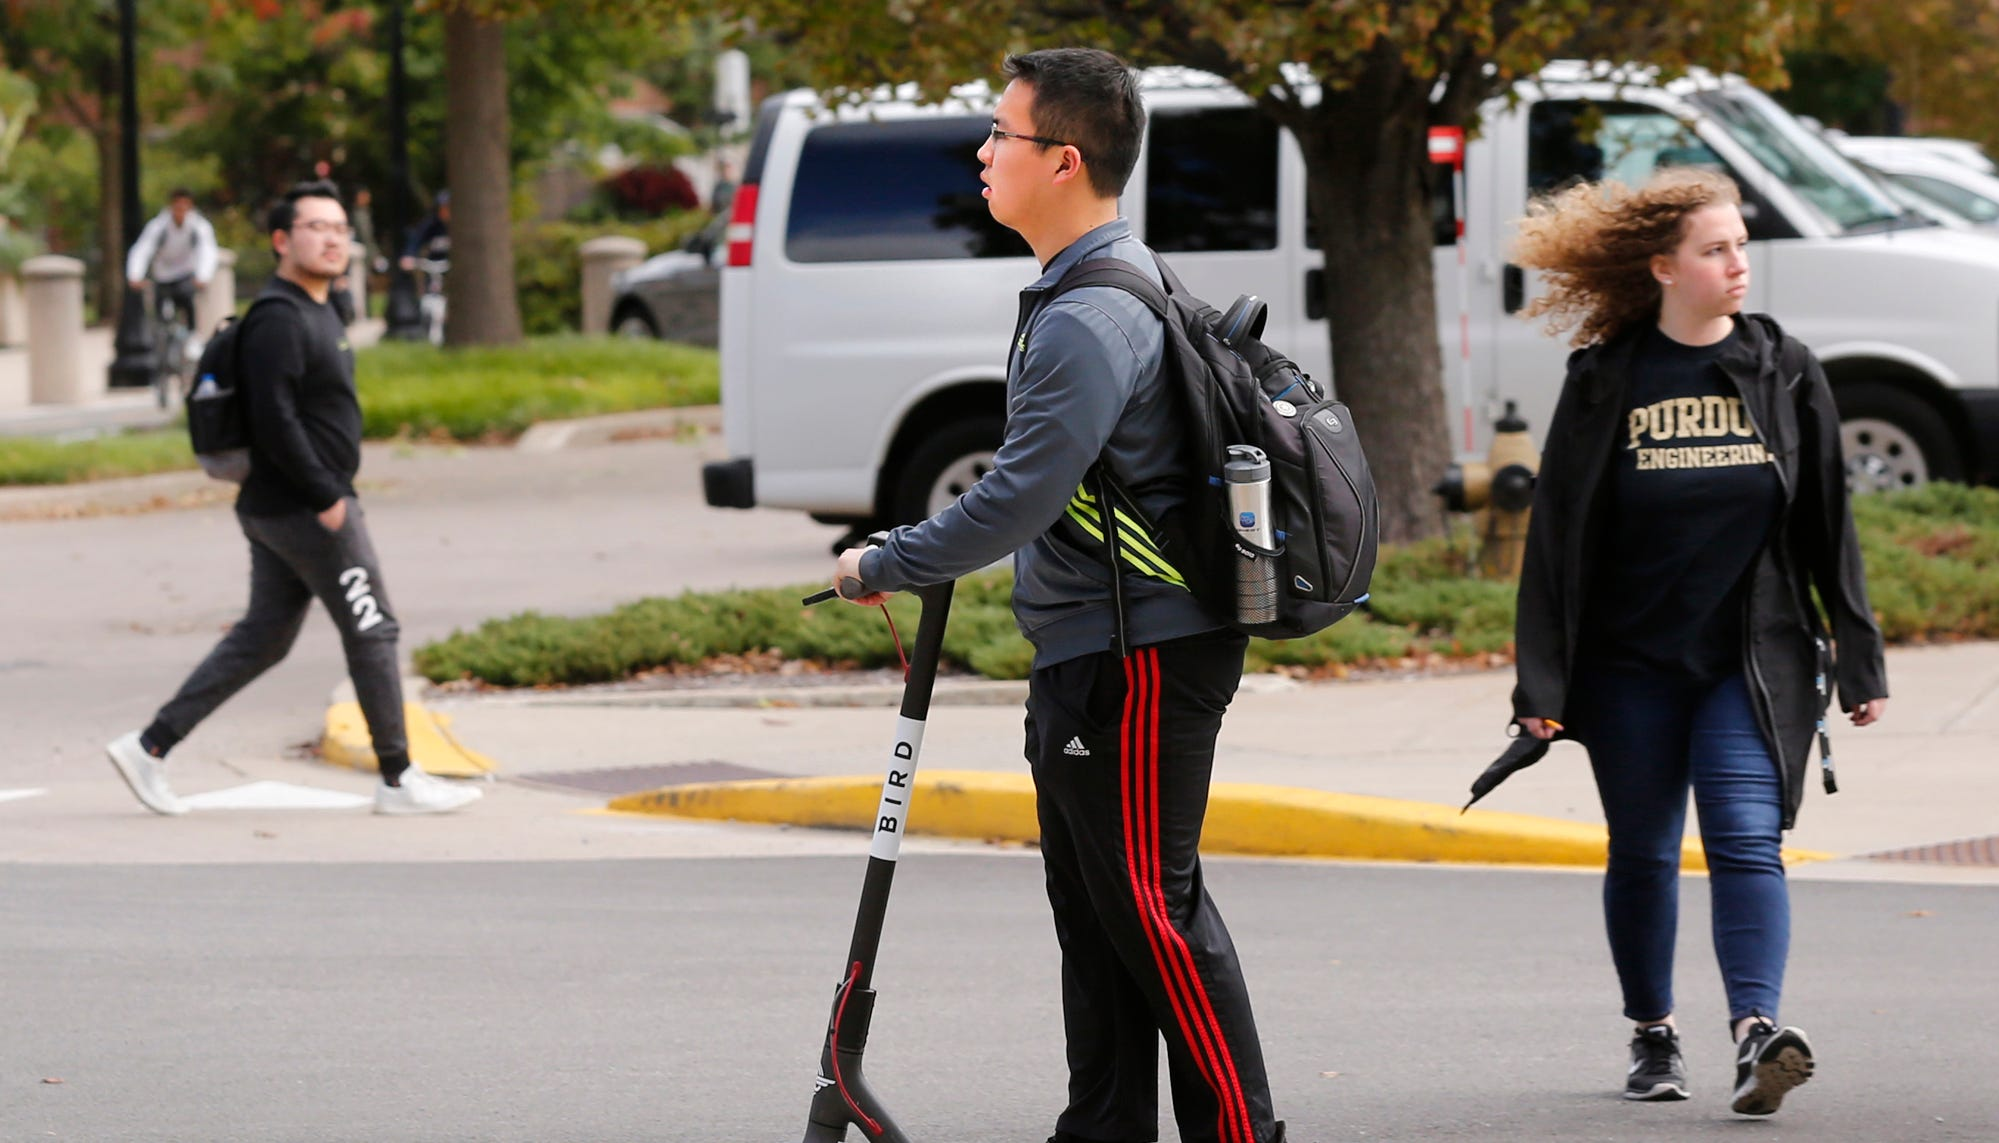 Purdue adds dozens of e-scooters on West Lafayette campus, this time for research